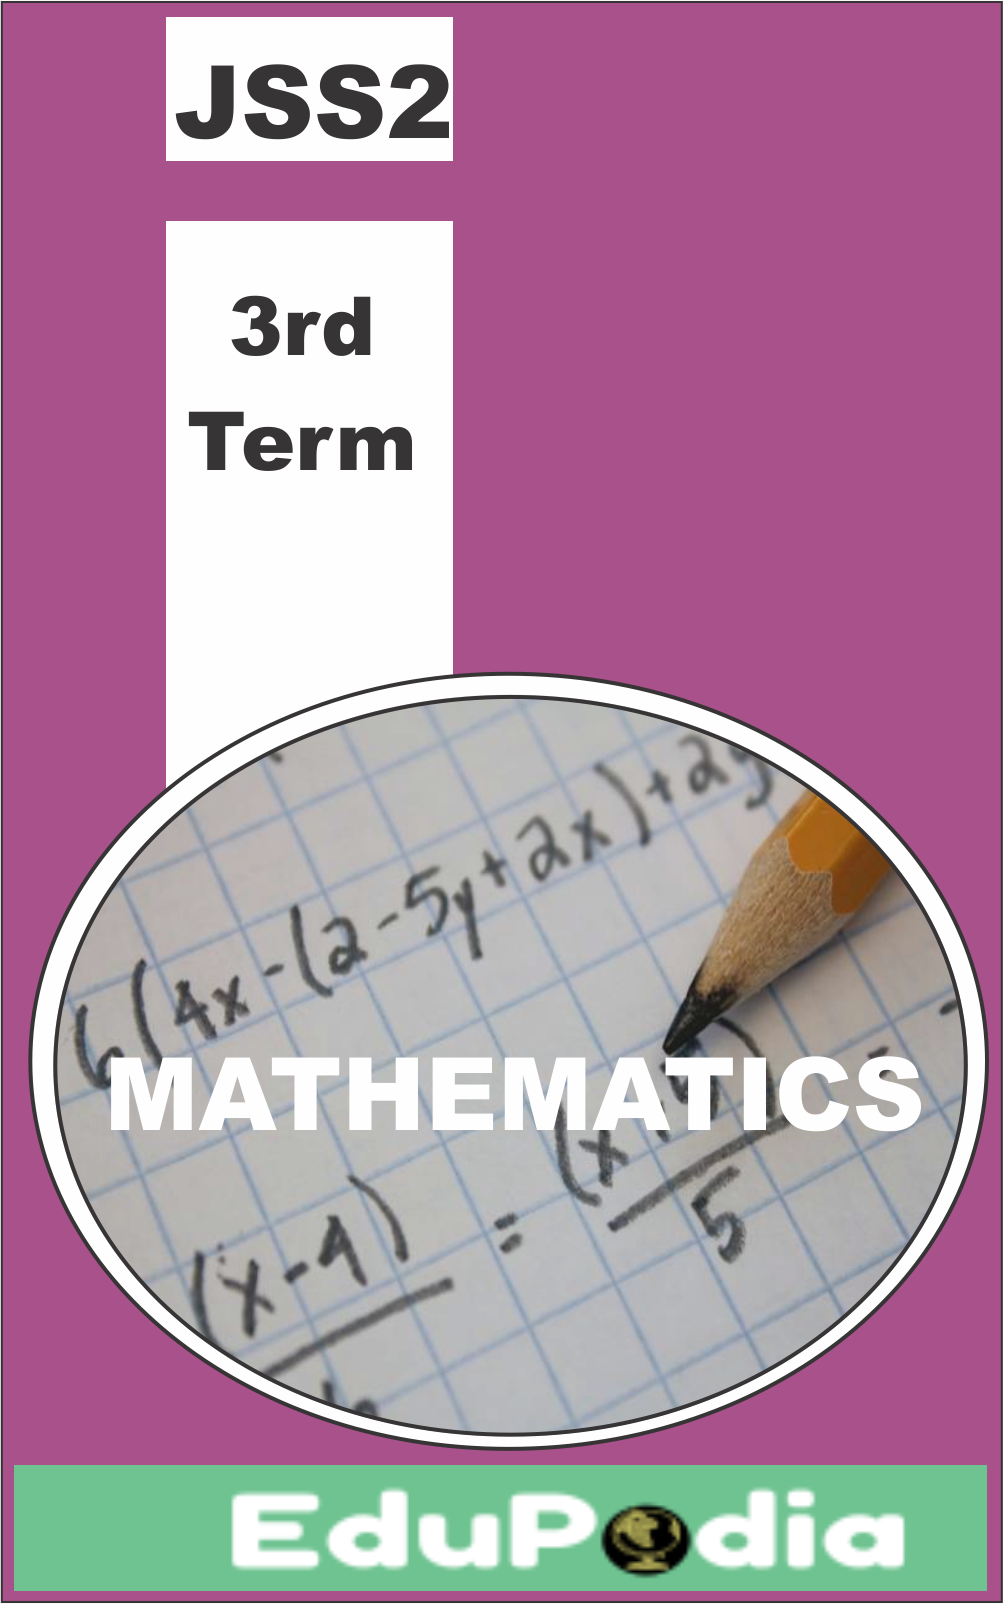 Third Term JSS2 Mathematics Lesson Note